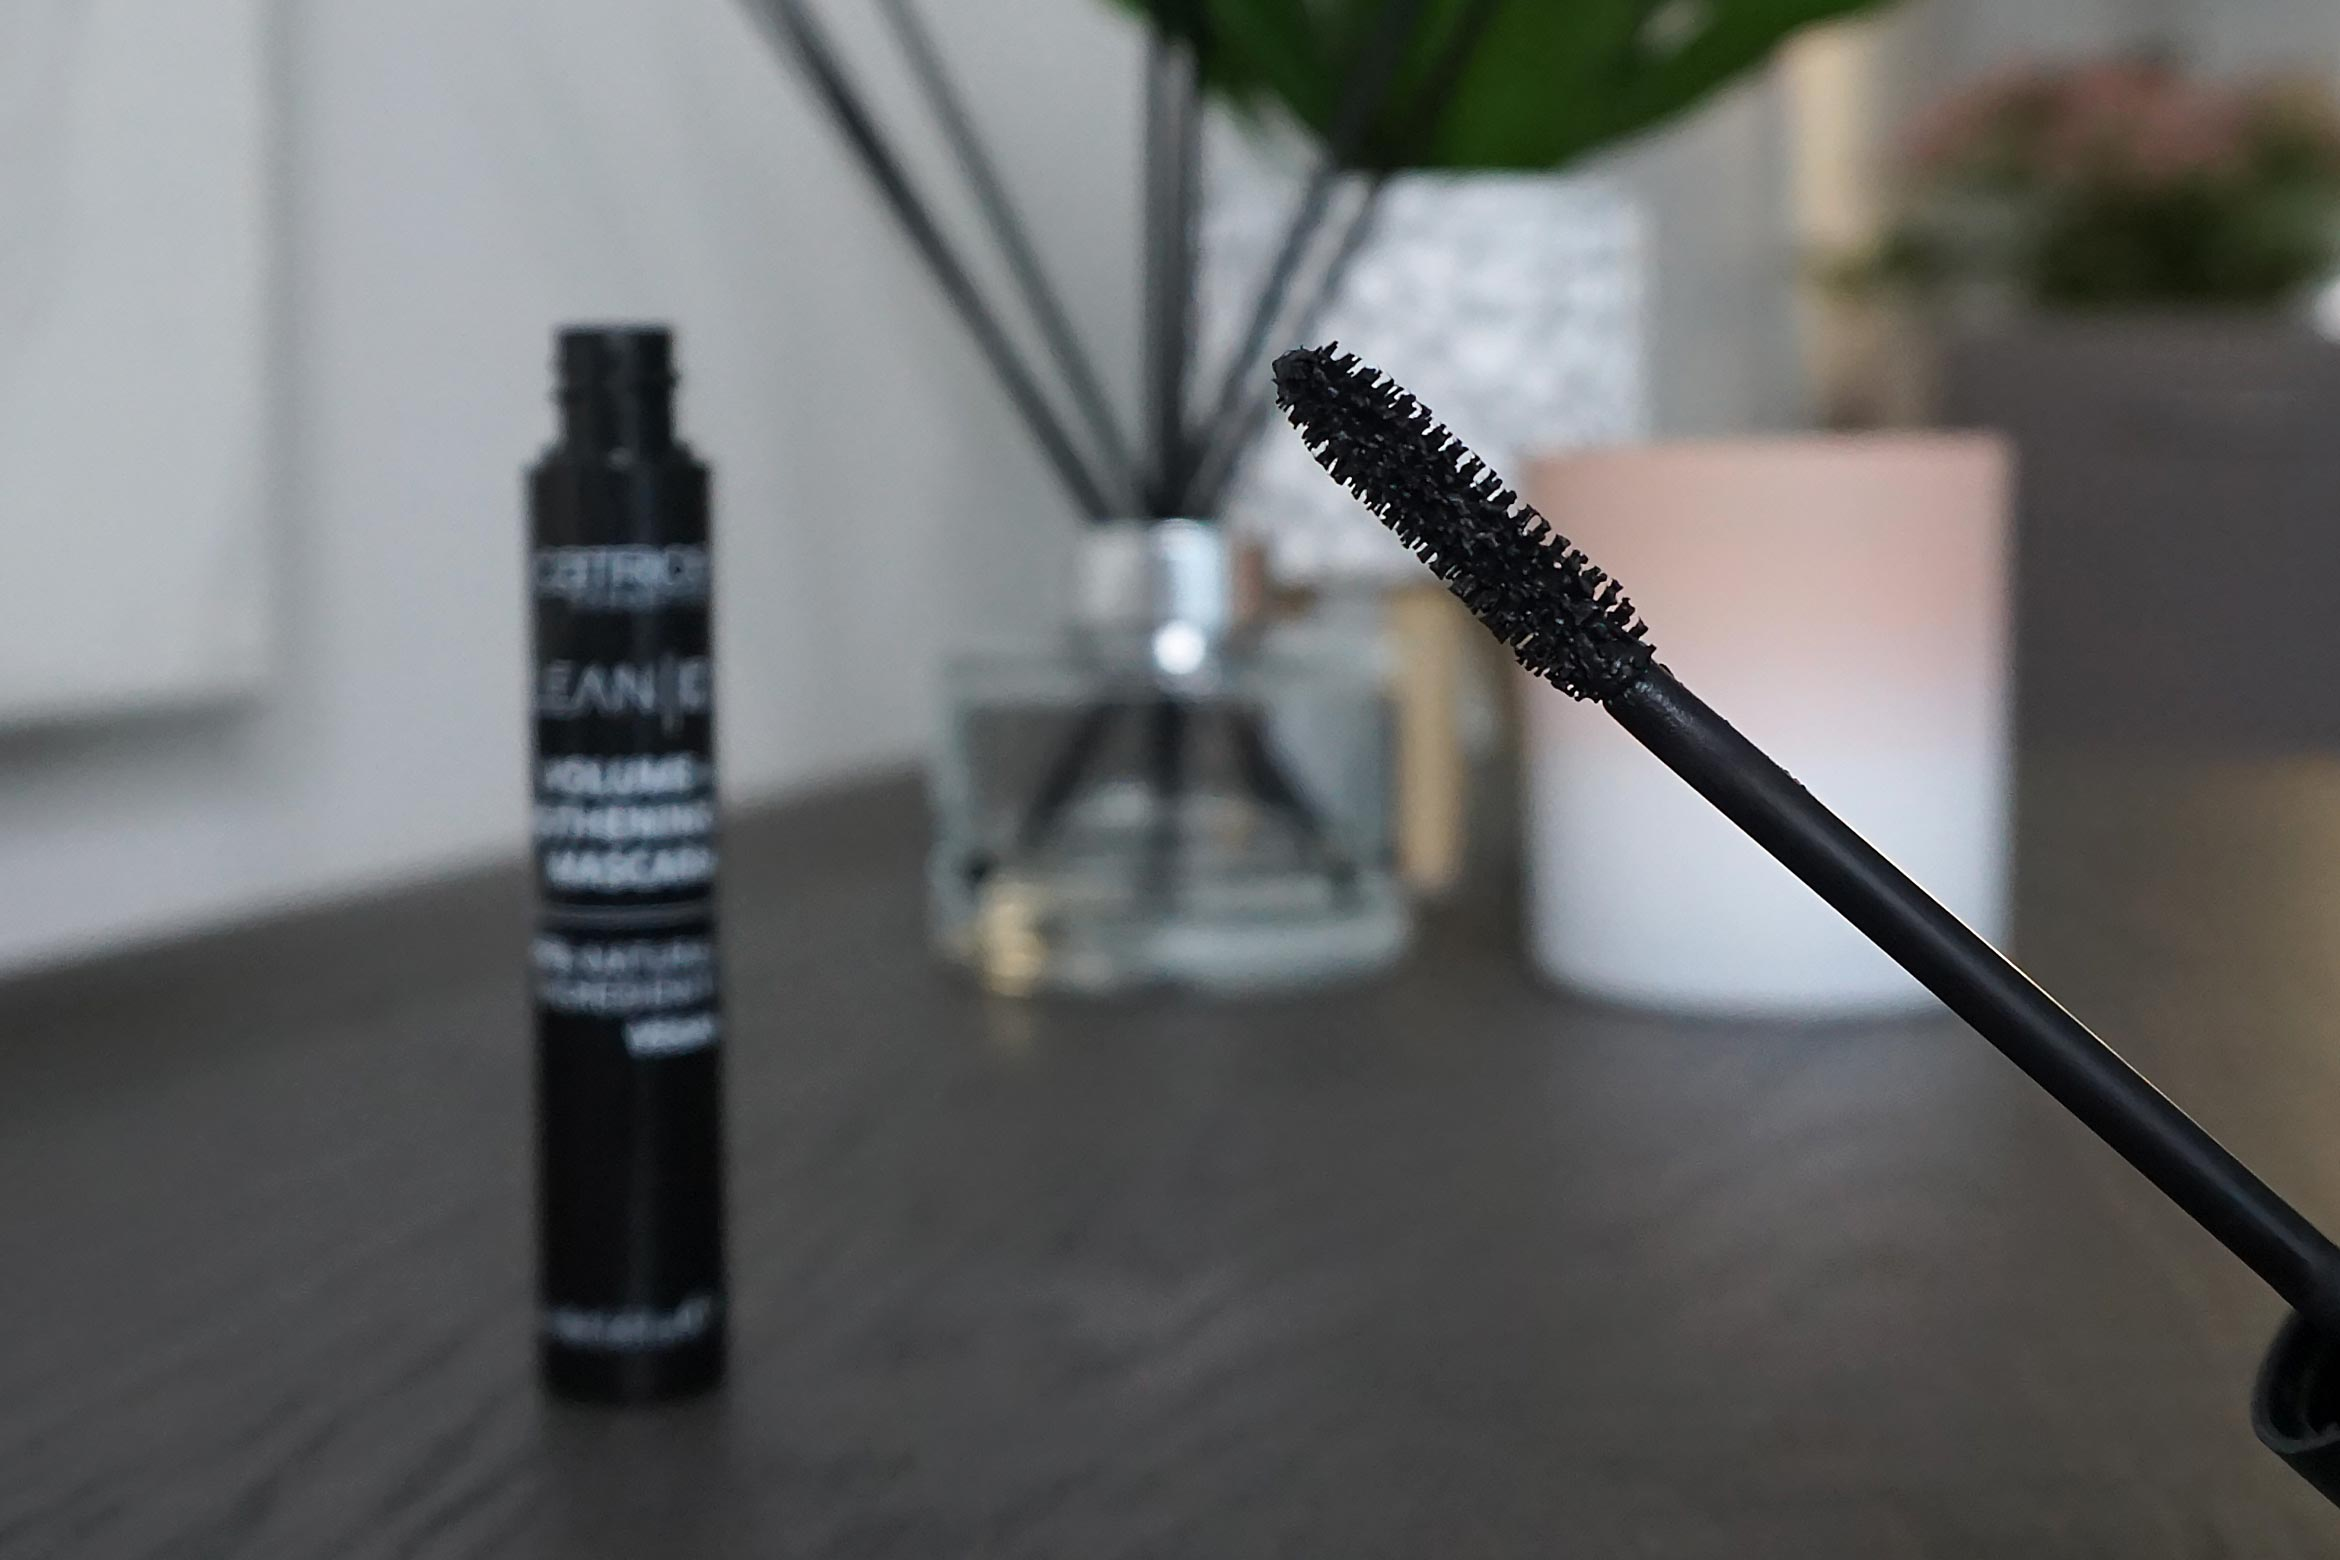 catrice-clean-id-volume-lengthening-mascara-review-7